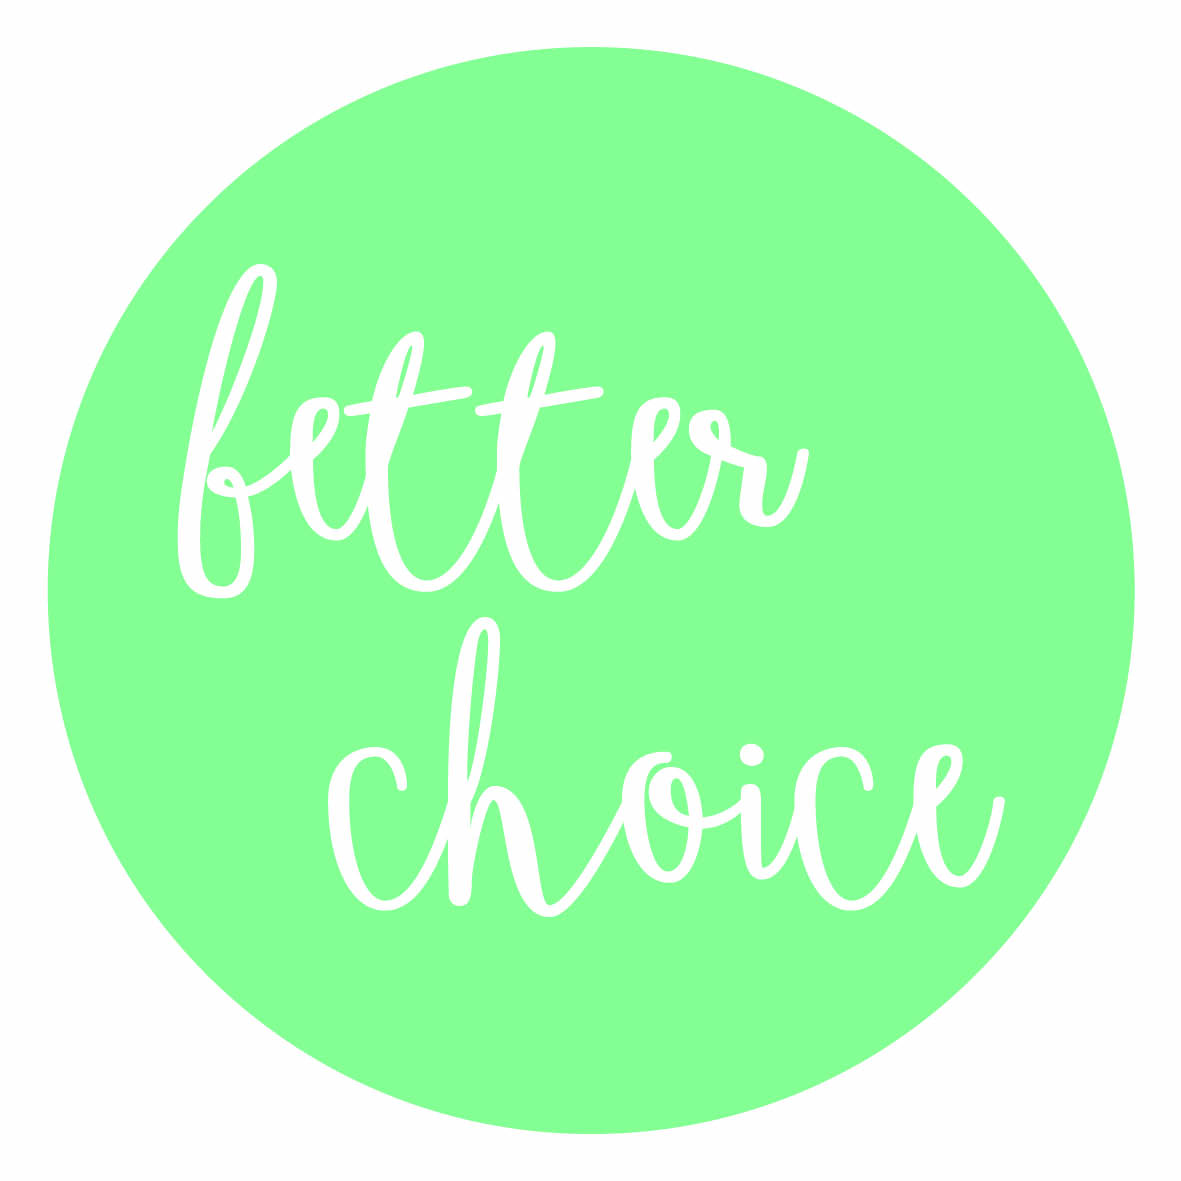 Betterchoices_symbol